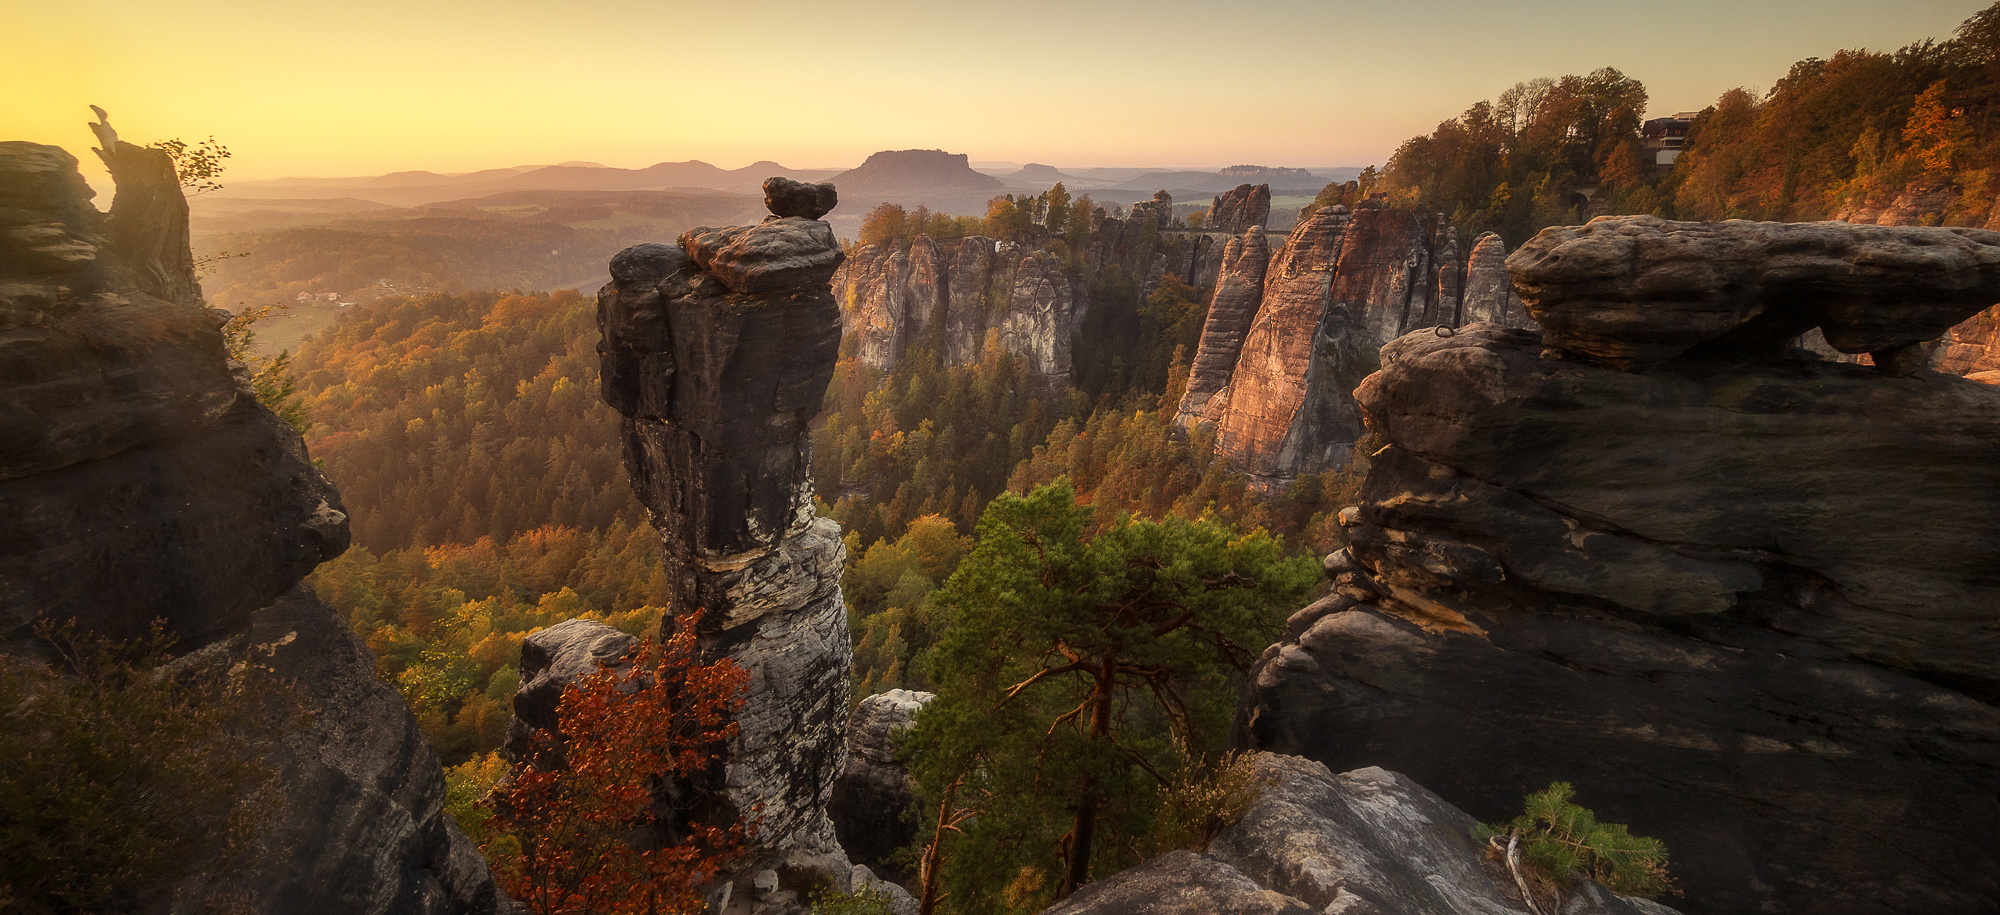 Saxon-Switzerland-saxony-germany-bastion bridge